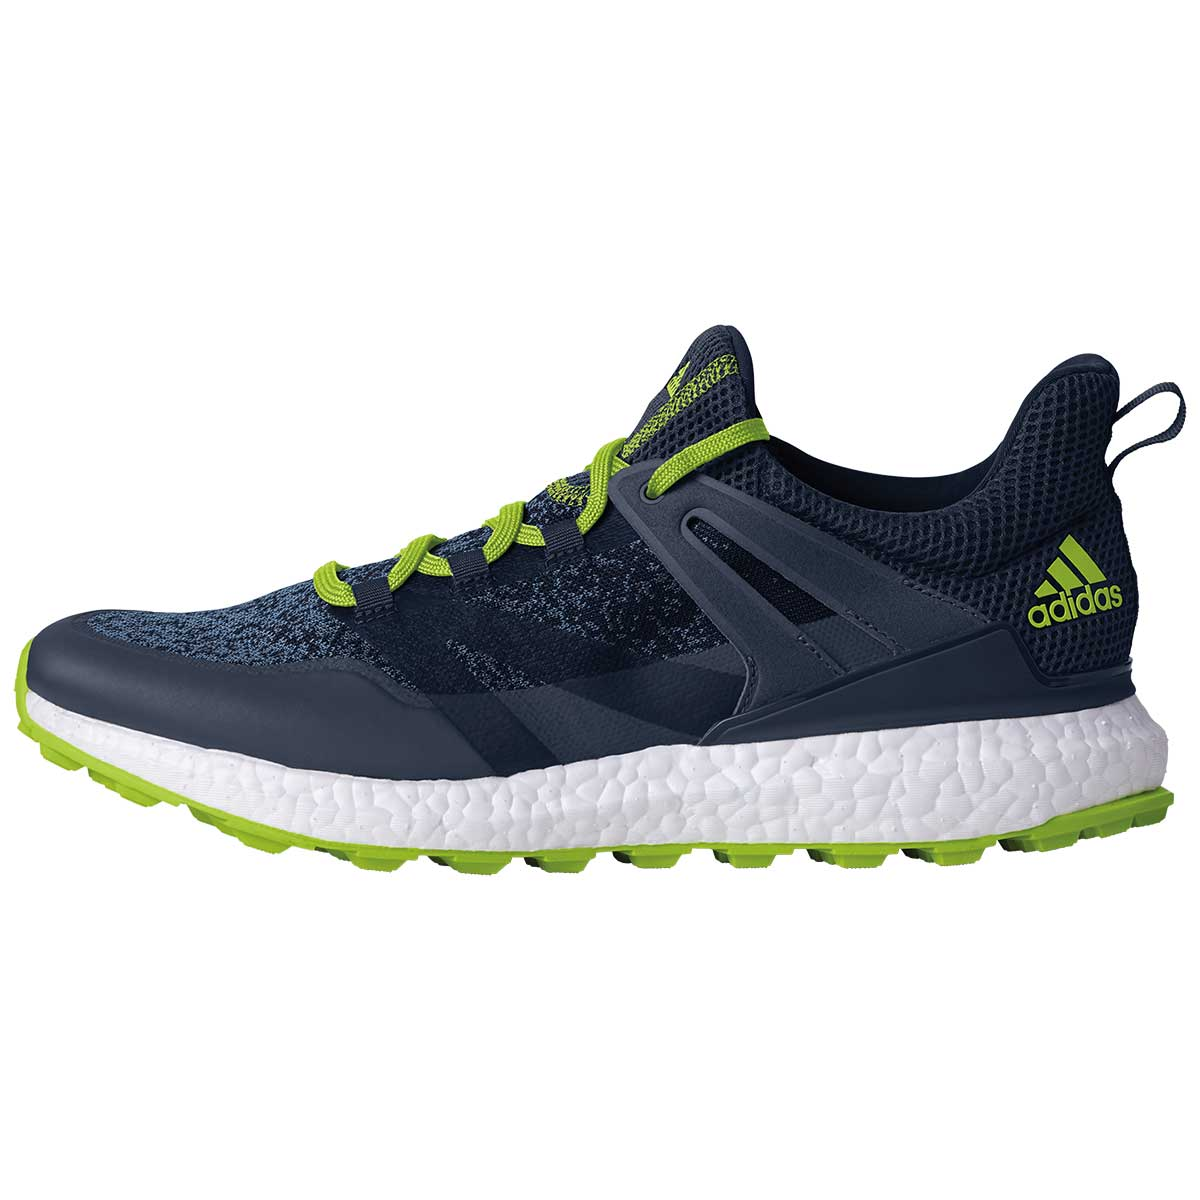 adidas Men's Crossknit Boost Golf Shoe - Navy/Slime